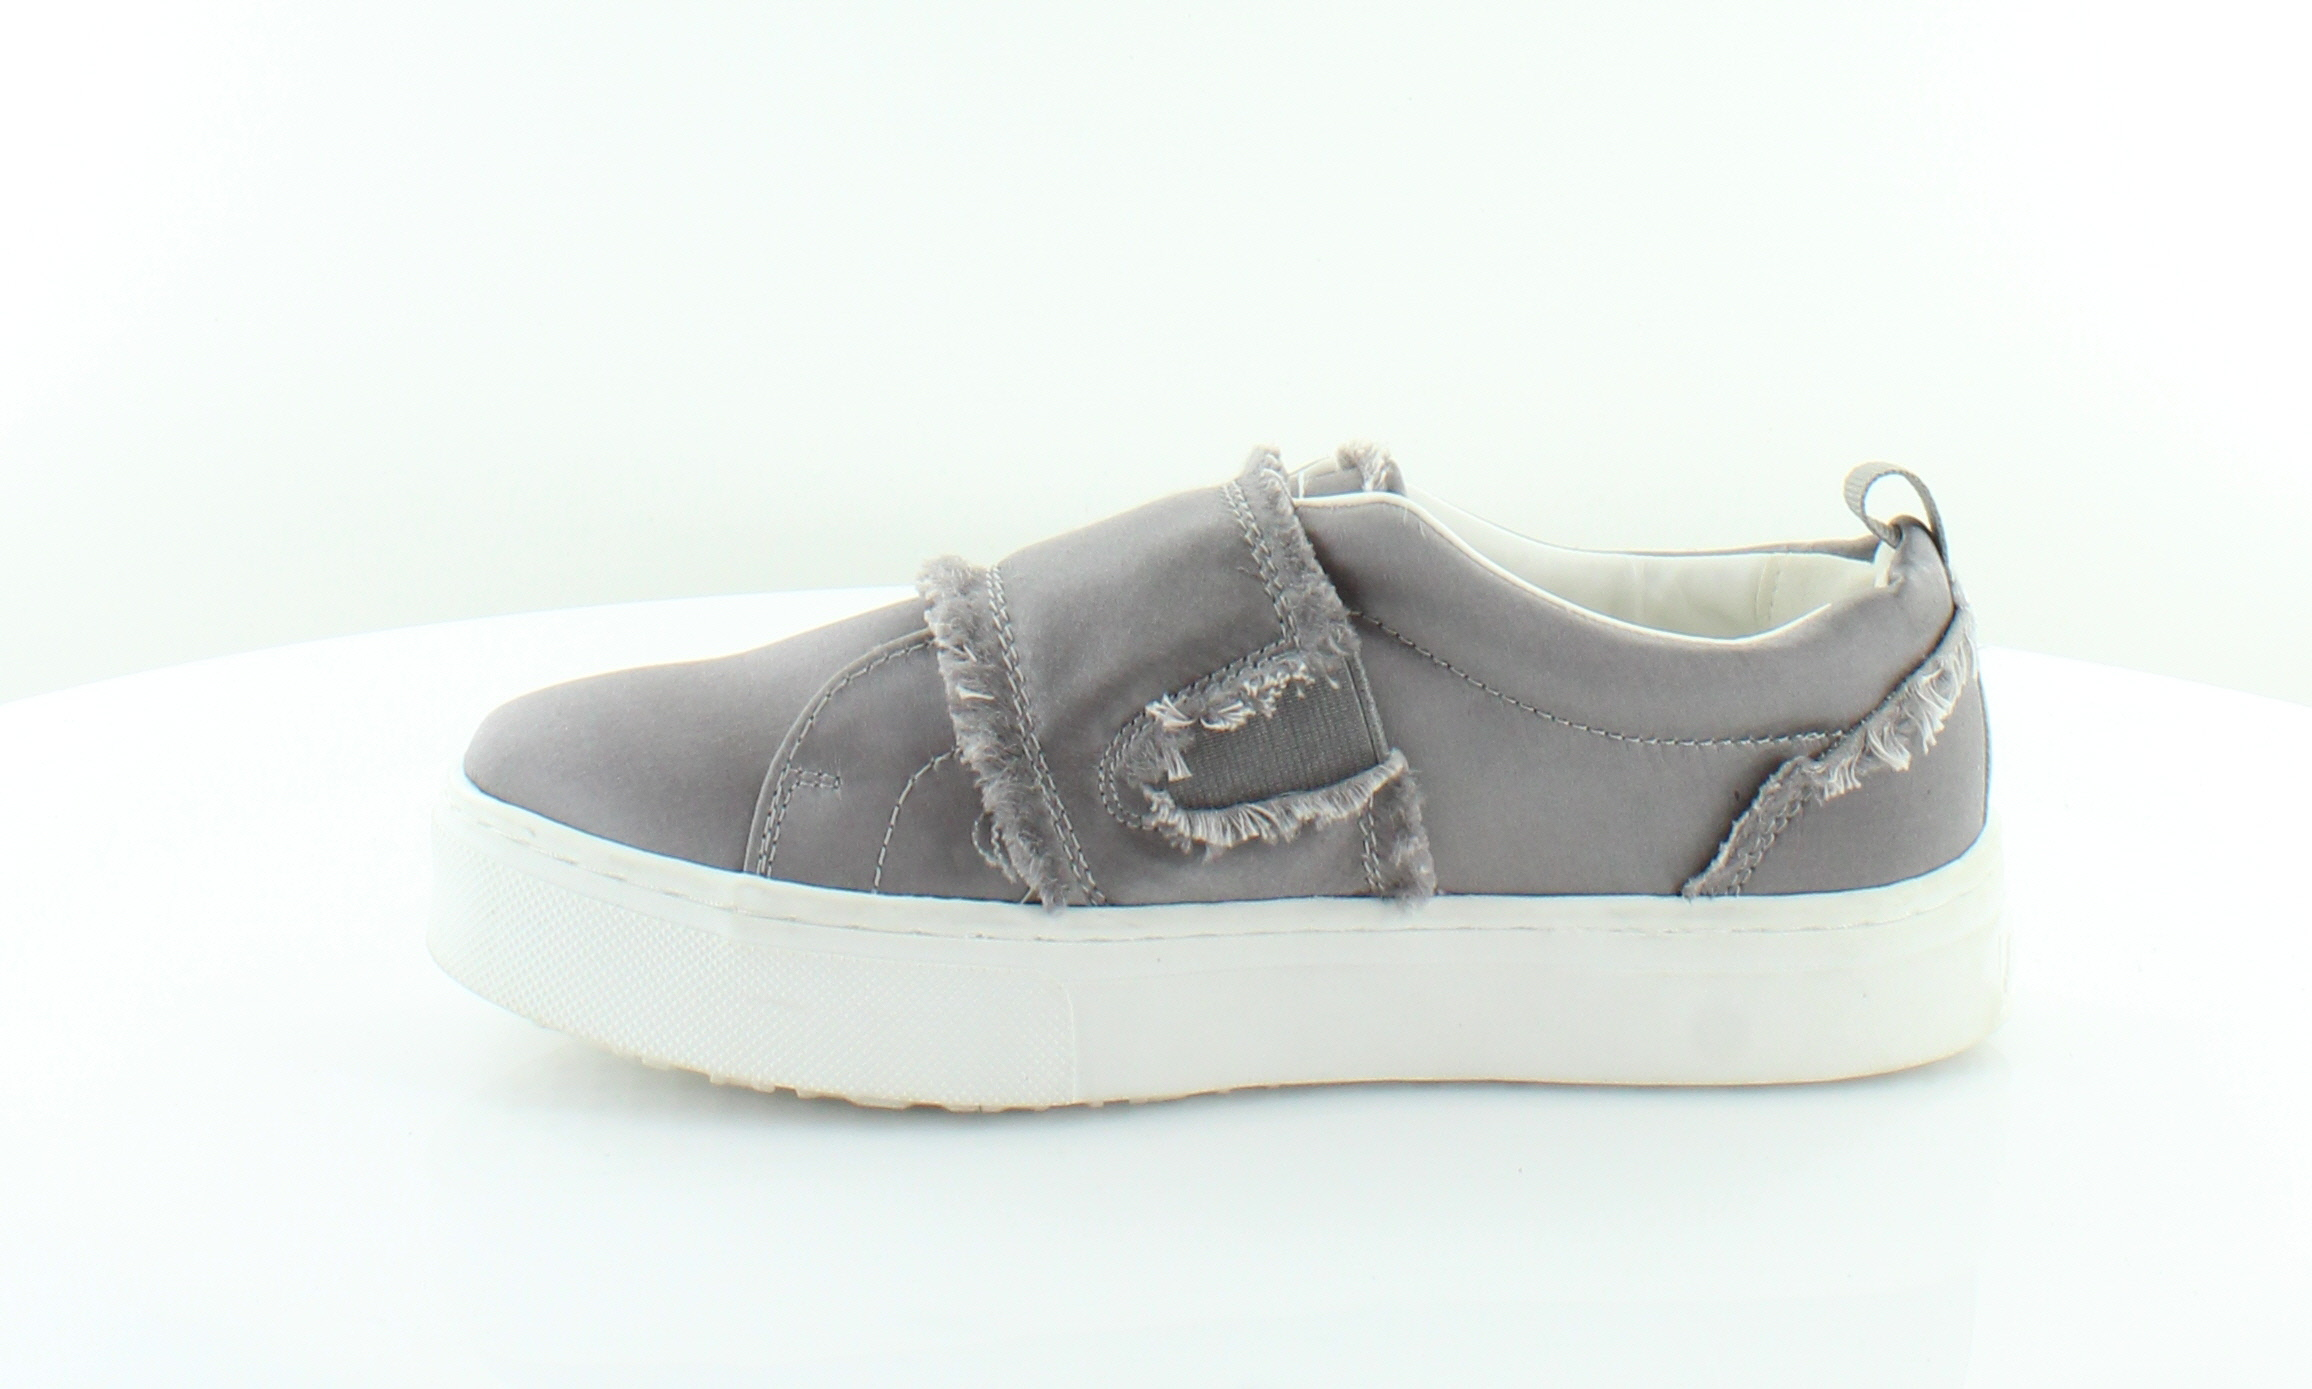 f24e0f5e21f3 ... Picture 2 of 5  Picture 3 of 5  Picture 4 of 5. 2. Sam Edelman Levine  Gray Womens Shoes ...